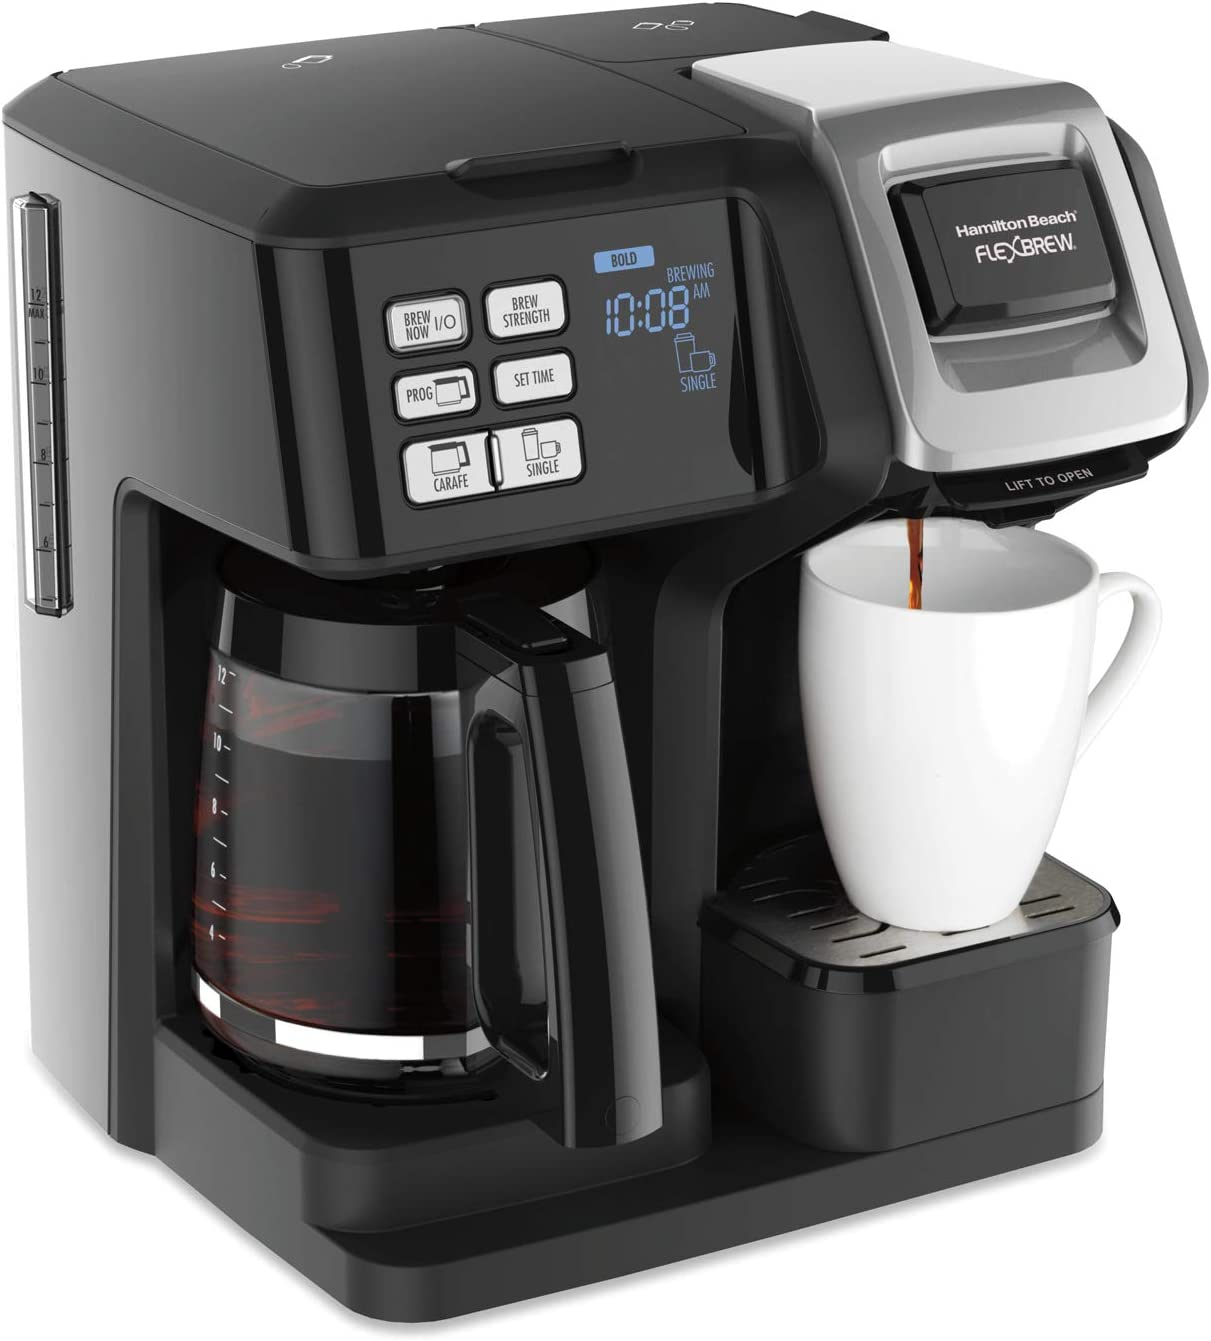 Hamilton Beach FlexBrew Trio Coffee Maker, 2-Way Single Serve & Full 12c Pot, Compatible with K-Cup Pods or Grounds, Combo, Black (49976)